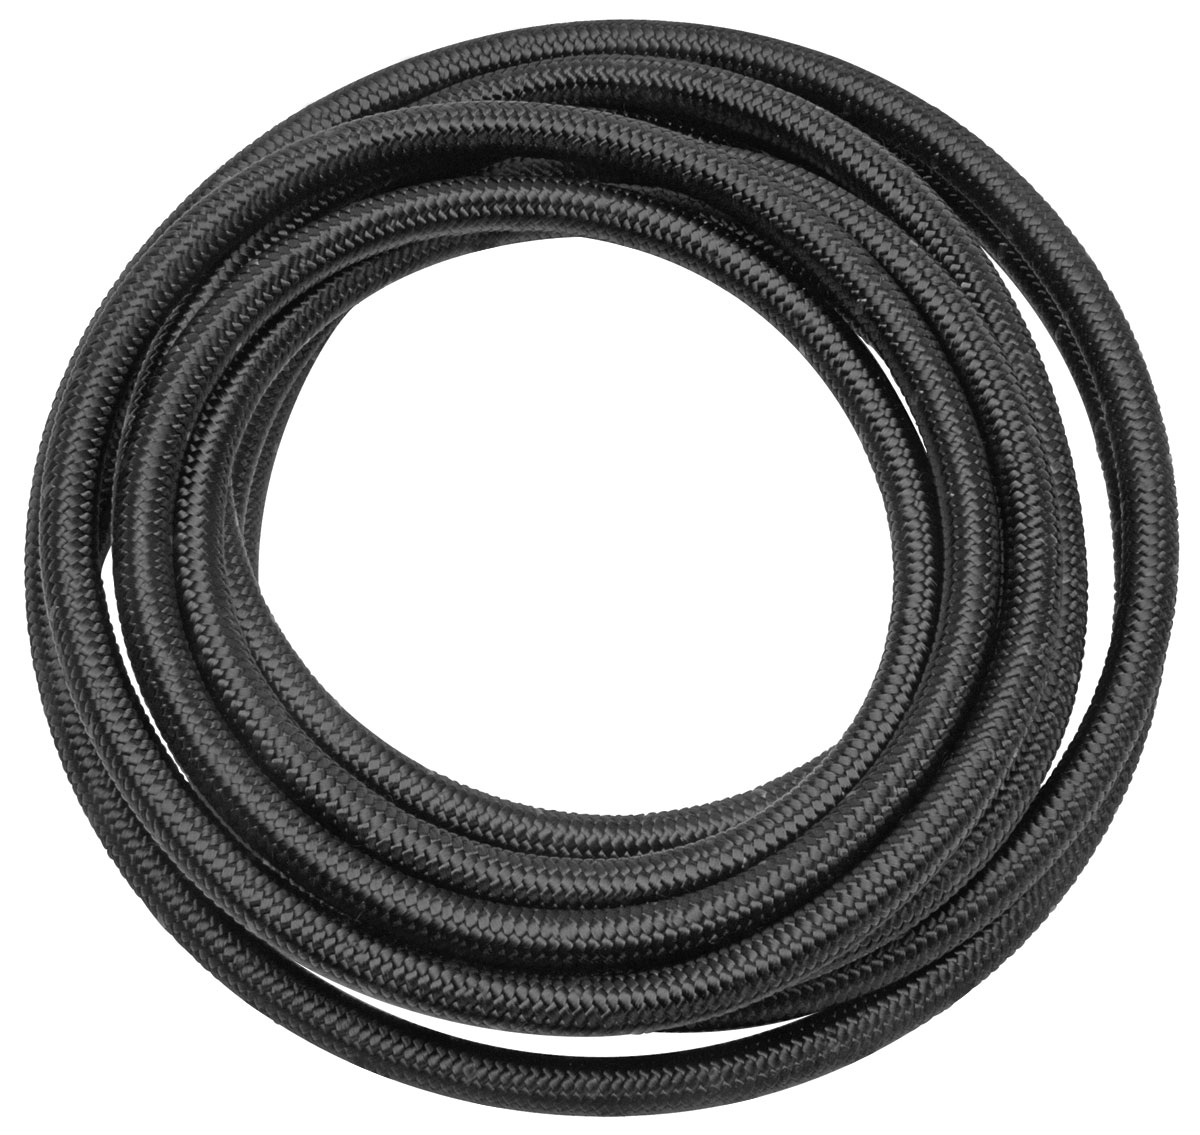 Hose, ProLite 350, Earls, -8AN, 10FT